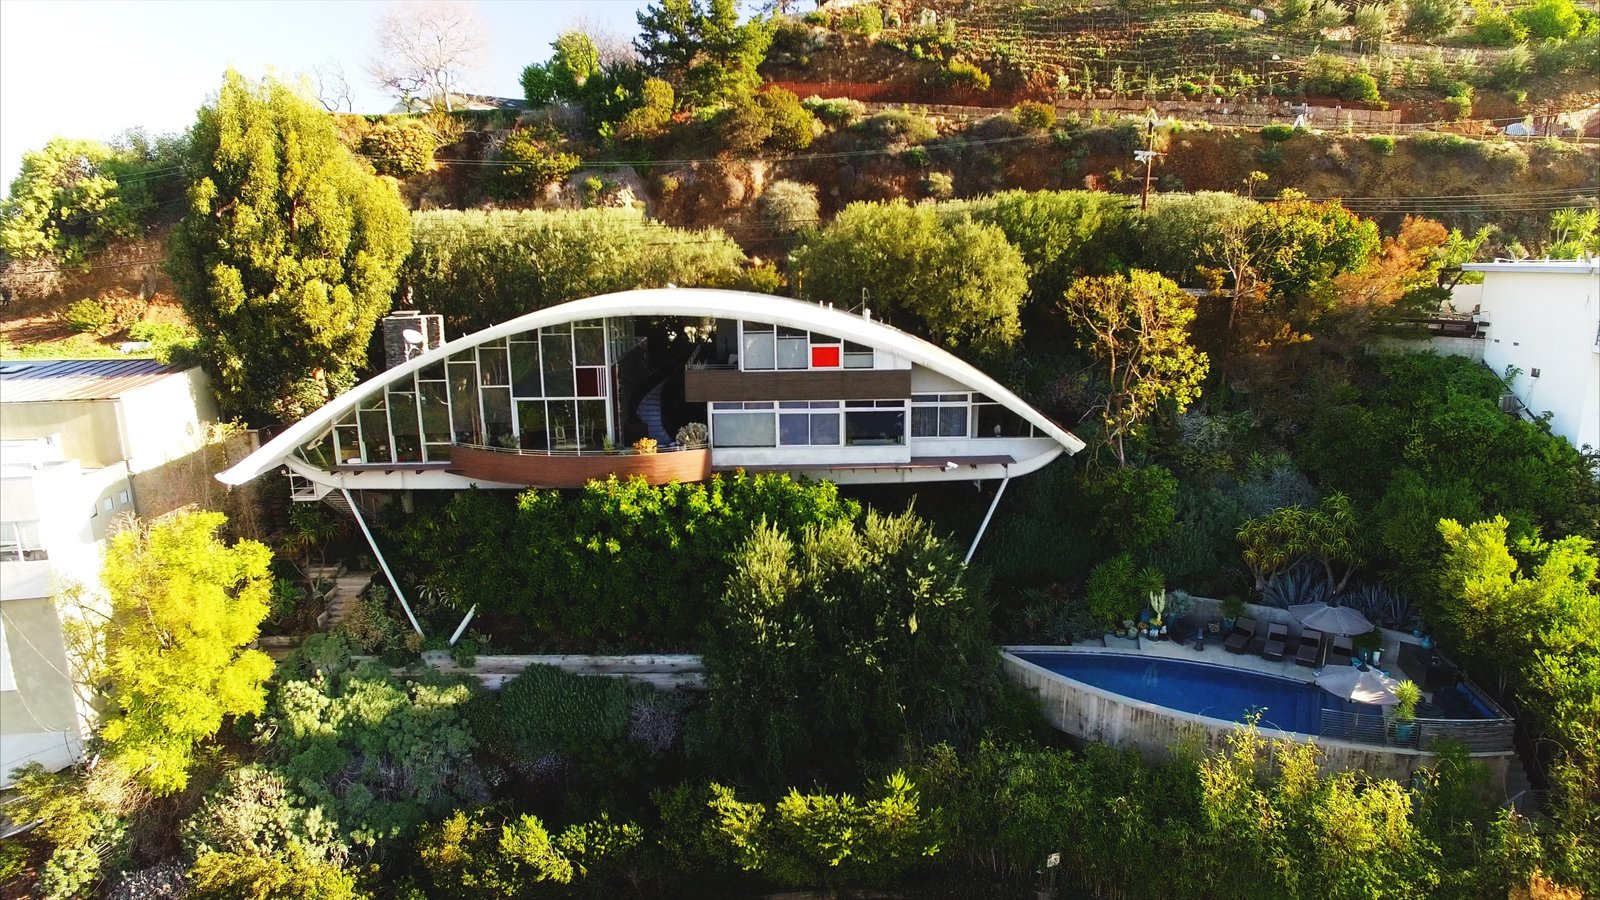 Photo 1 of 9 in Iconic Perspectives: John Lautner's Garcia House